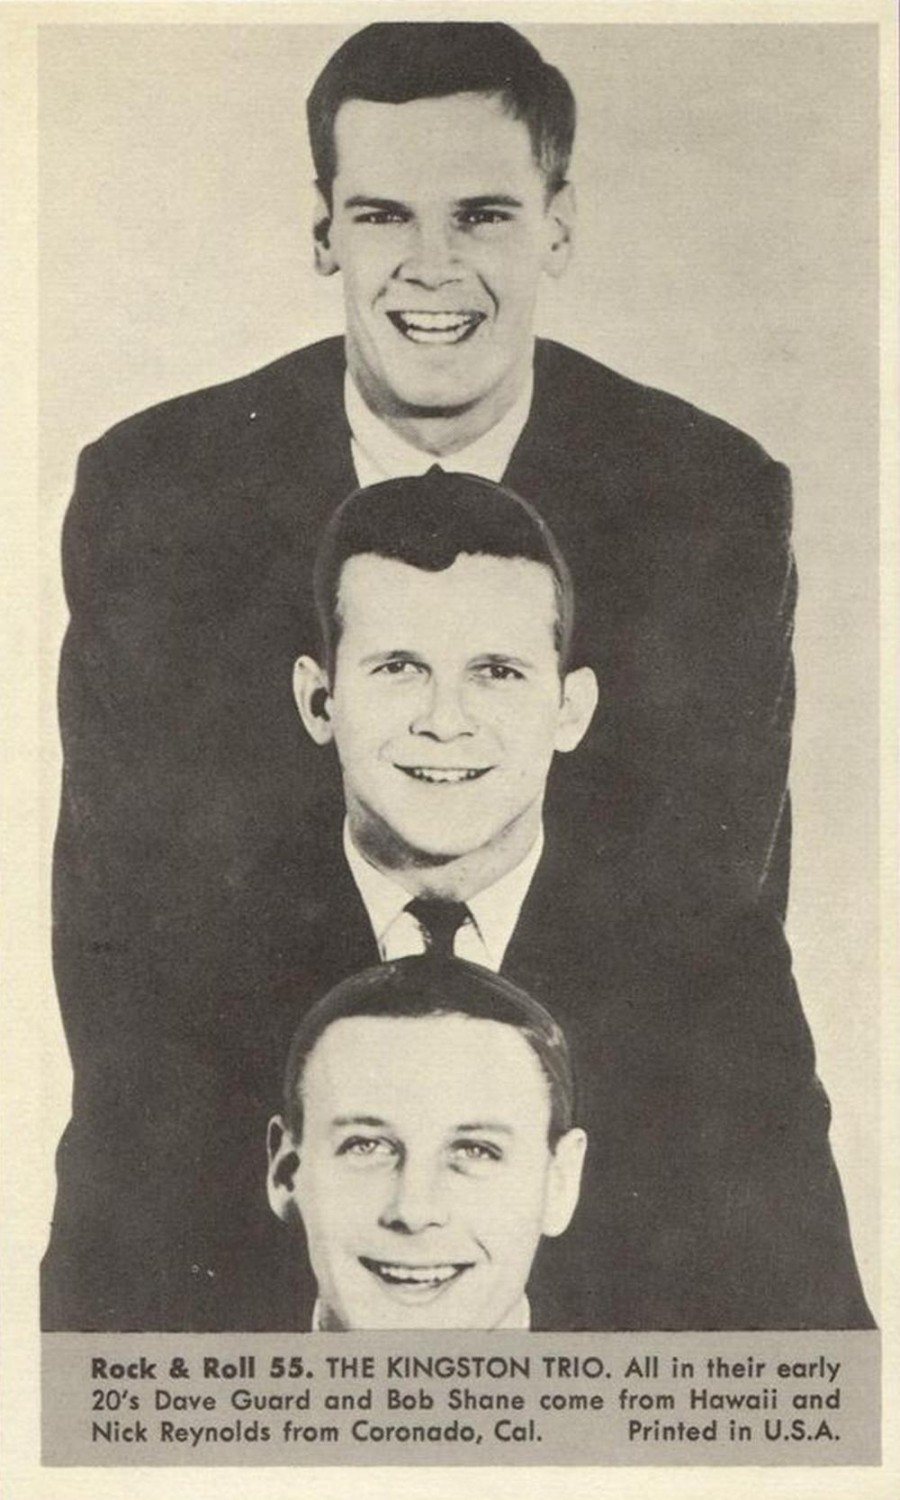 Nu Trading Cards (1959) Rock And Roll Stars 55